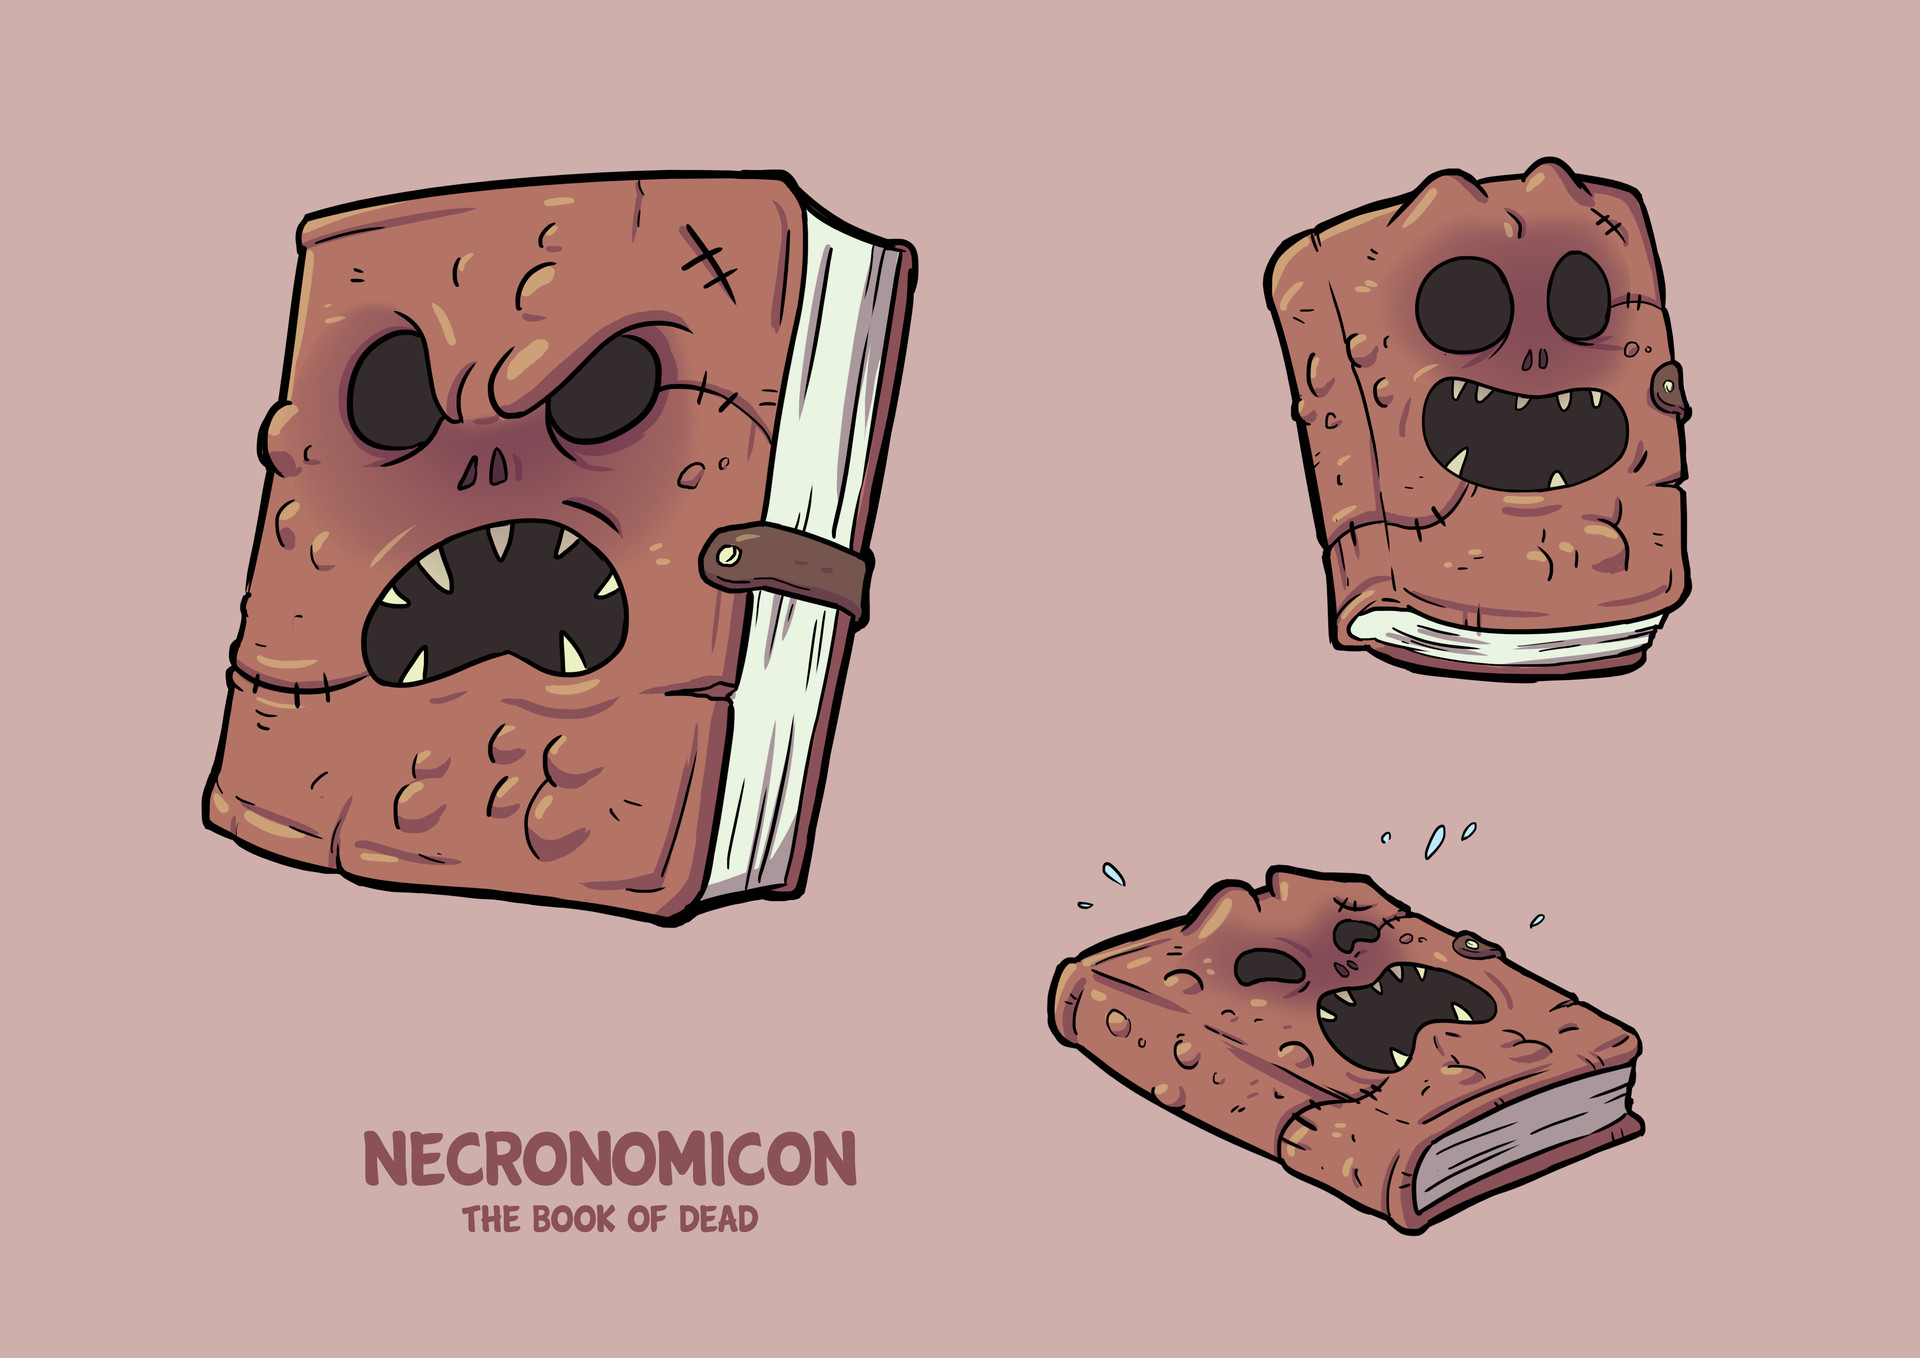 Necronomicon - The Book of Dead